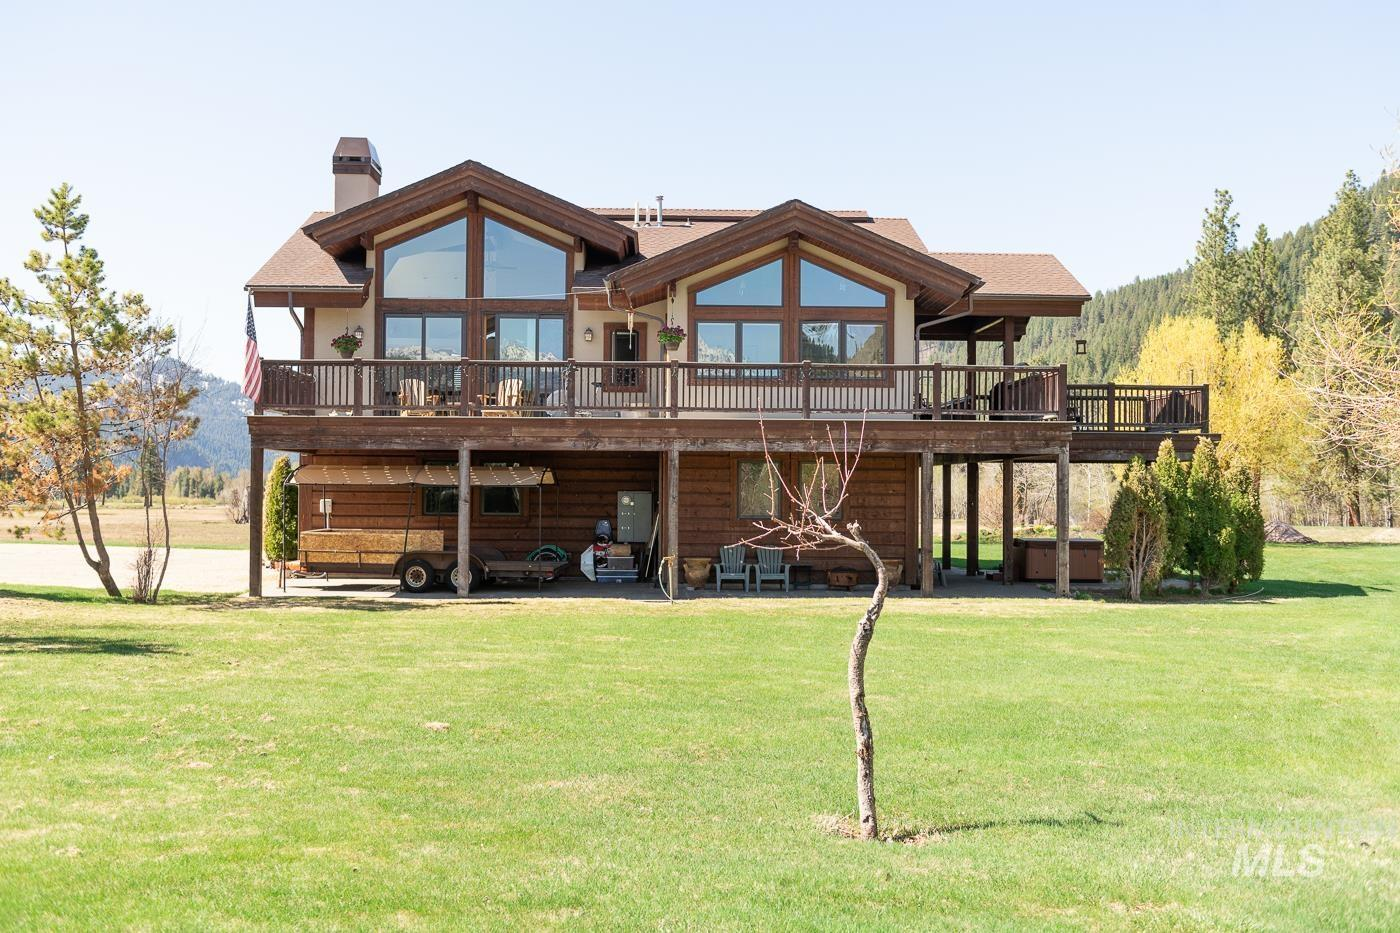 3793 N Rawah Dr Property Photo - Featherville, ID real estate listing